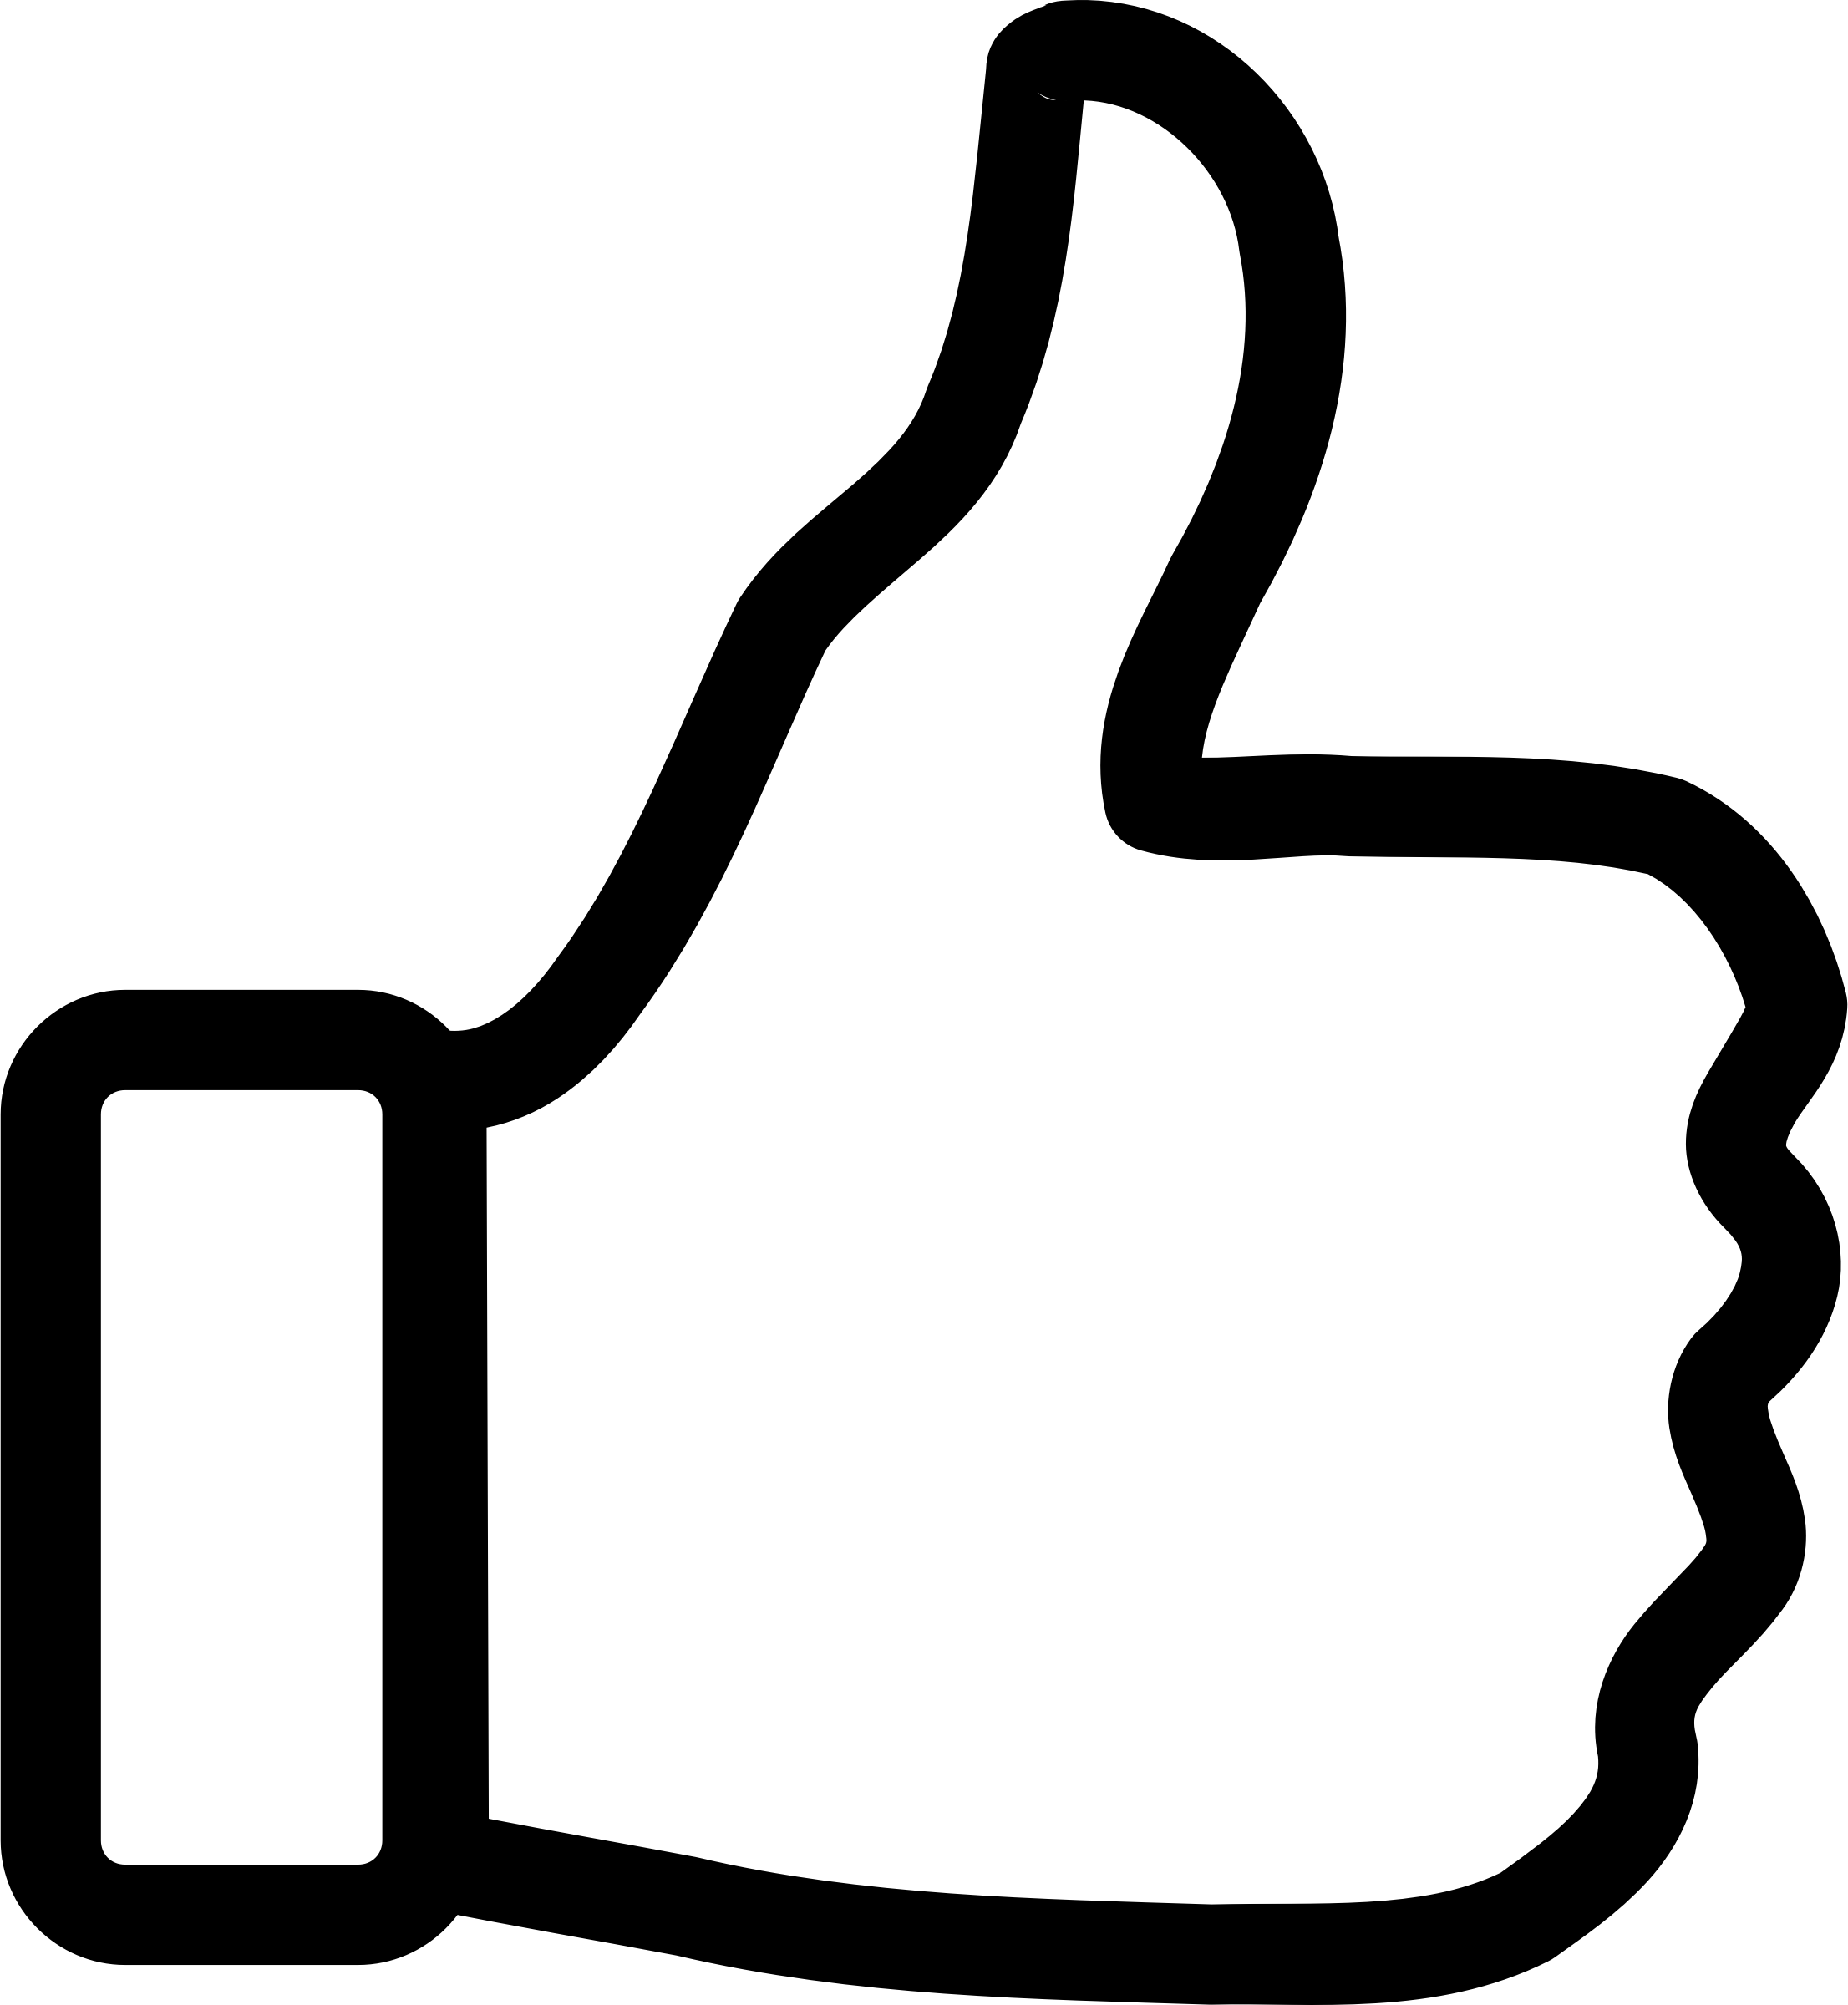 Thumbs Up Clip Art PNG Image | Gallery Yopriceville - High ... |Thumbs Up Png Transparent